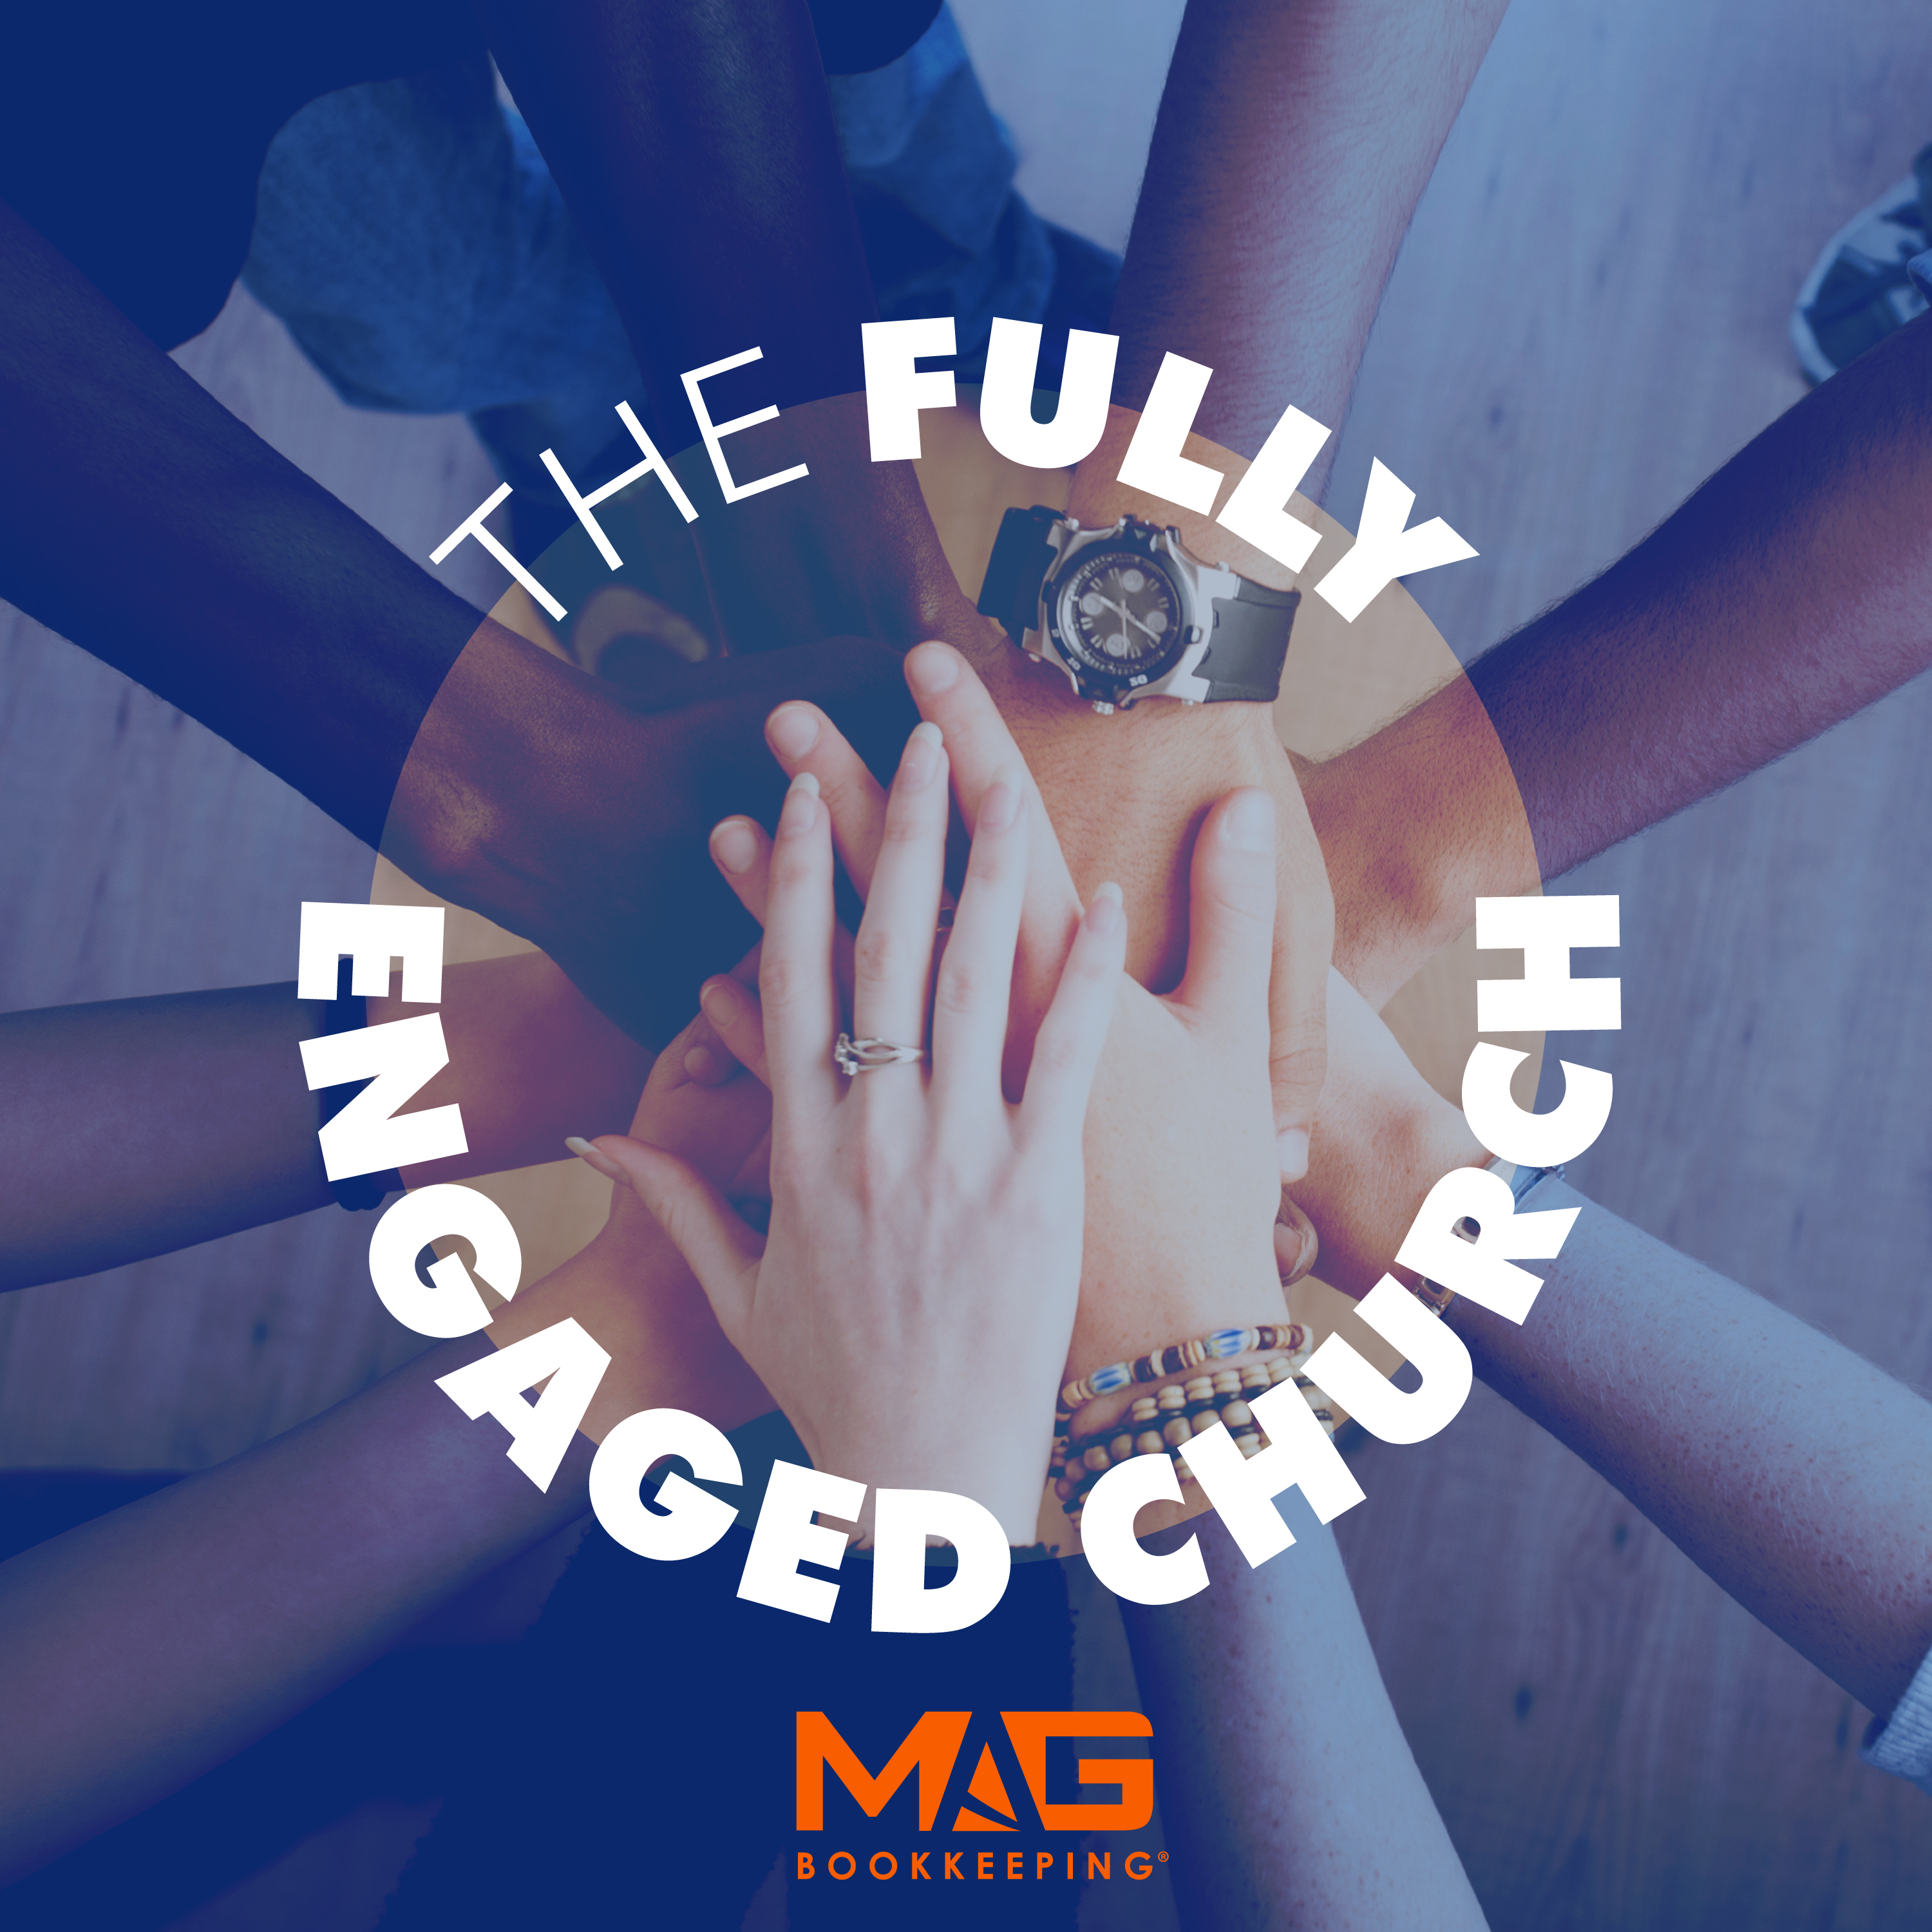 The Fully Engaged Church